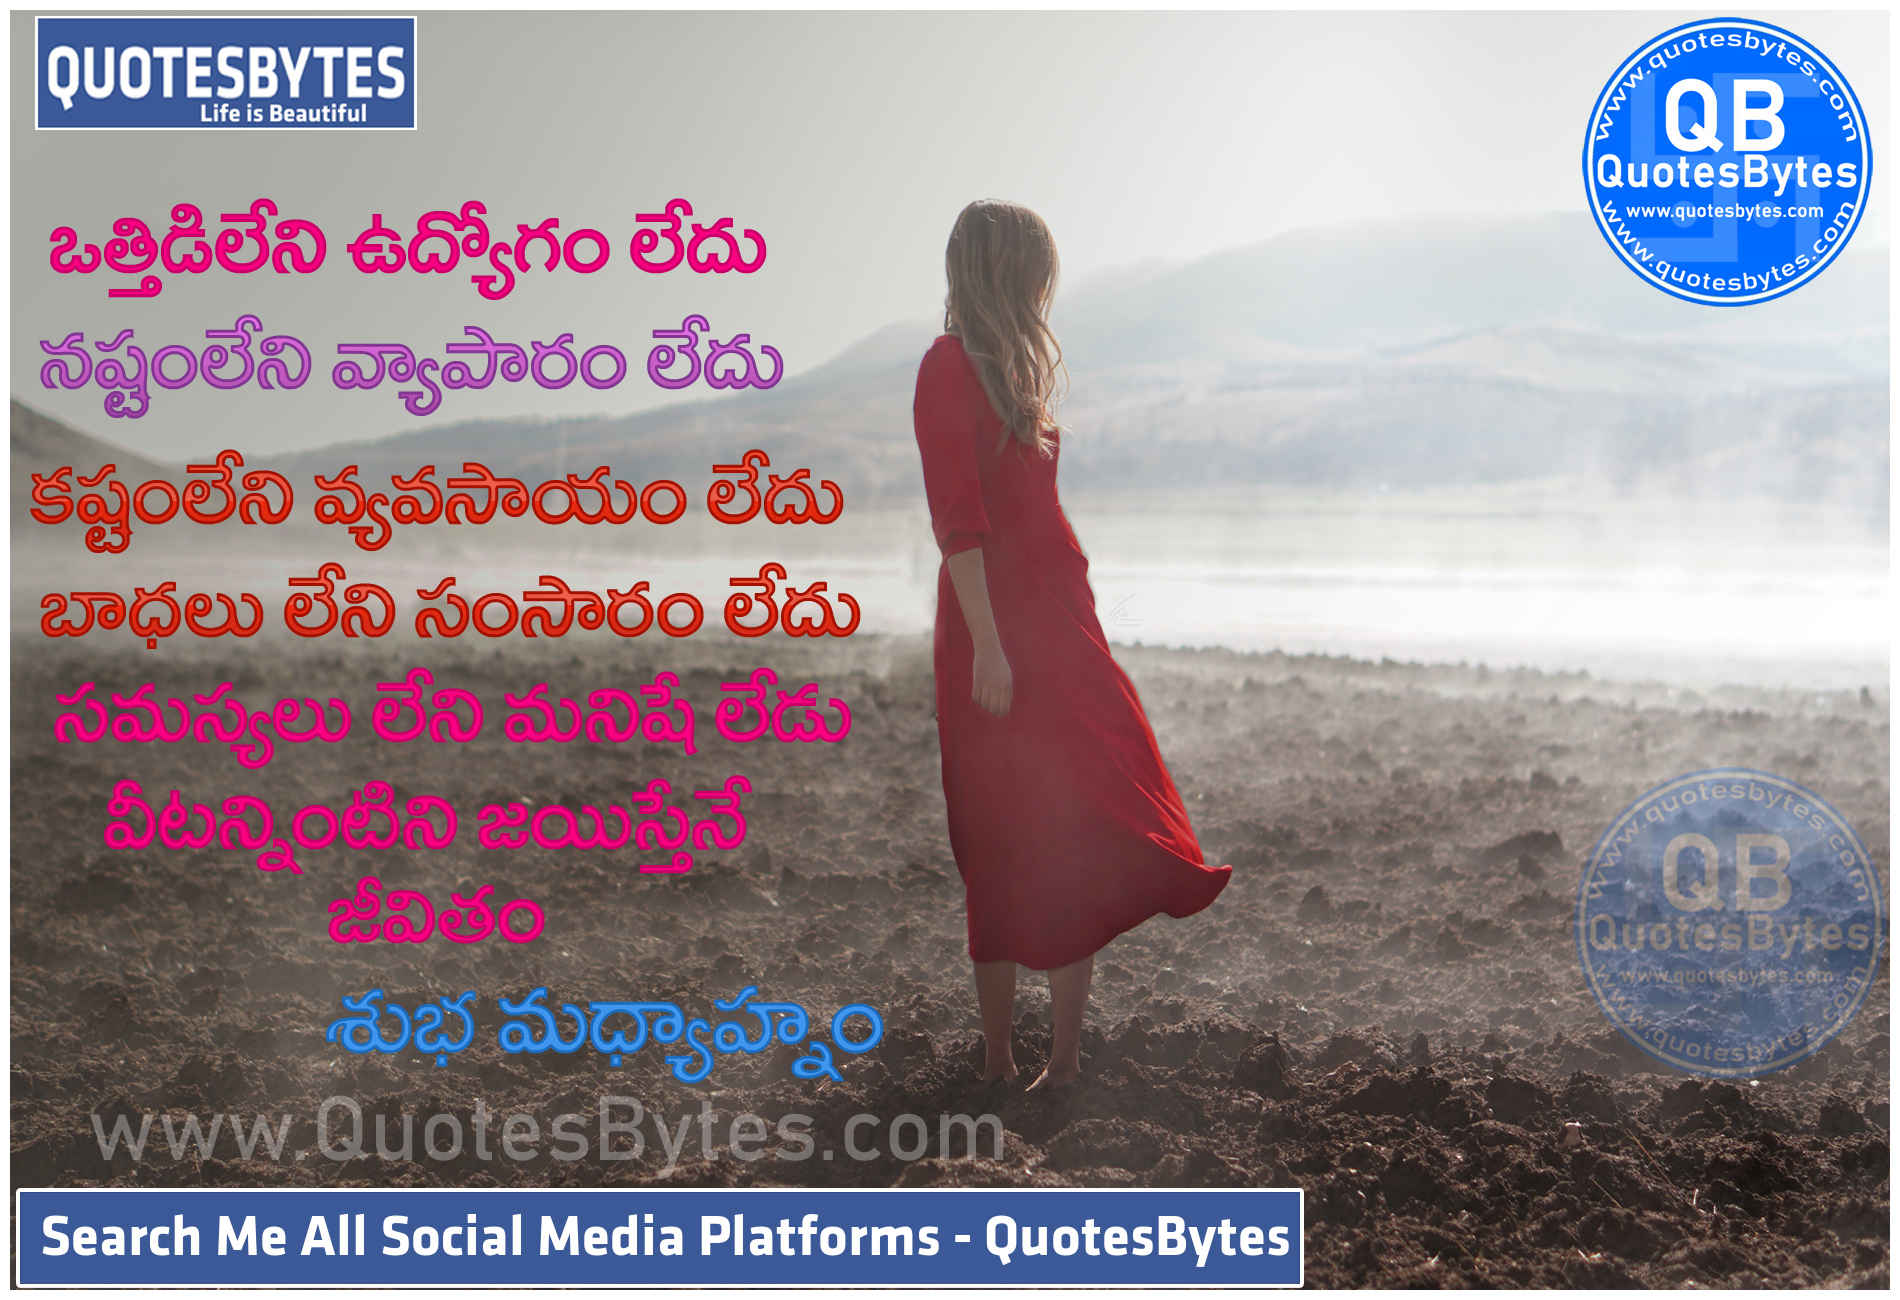 best Telugu Good Afternoon quotes, Good Afternoon Quotes Good Afternoon Wallpapers, QuotesBytes providing Here is telugu Quotes, Good Afternoon quotes telugu text,telugu Good Afternoon kavithalu,2021 Good Afternoon quotes in telugu,inspirational Good Afternoon quotes in telugu, Telugu-Quotes , Good Afternoon quotes telugu for friends, Good Afternoon in telugu language, Good Afternoon quotes telugu love,telugu good morning sms 140, Good Afternoon quotes telugu text,telugu Good Afternoon kavithalu,2021 Good Afternoon quotes in telugu, Good Afternoon quotes, telugu for friends, Good Afternoon in telugu language, Good Afternoon quotes telugu love,telugu Good Afternoon quotes download,telugu Good Afternoon quotes, Good Afternoon quotes telugu love download,inspirational Good Afternoon quotes in telugu, Good Afternoon quotes telugu love, Good Afternoon quotes telugu video download,funny Good Afternoon quotes in telugu, Good Afternoon  in telugu for lovers, Good Afternoon images with quotes for whatsapp in telugu, telugu Good Afternoon quotes,best telugu Good Afternoon quotes, Telugu-Mother-Quotes ,telugu love Good Afternoon quotes,telugu inspirational Good Afternoon quotes,telugu beautiful Good Afternoon quotes,telugu Good Afternoon ,telugu funny Good Afternoon quotes,telugu  Good Afternoon quotes, Sunrise Quotes InTelugu, Inspirational Subhodayam, Good Afternoon Quotes, Good Afternoon Wallpapers, HD Telugu Good Afternoon Quotes, Best Telugu Good Afternoon Images With Telugu Quotes, Telugu Good Afternoon quotes with images, Motivational Subhodayam, life Good Afternoon quotes in telugu motivational thoughts messages, Nice Telugu Subhodayam Quotes With Images, trending inspiration Good Afternoon quotes in telugu and english Text, online friendship Good Afternoon quotes in telugu download, Inspirational Good Afternoon Motivational Good Afternoon , Good Afternoon Images Pictures In Telugu ,latest morning quotes in telugu language, HD Subhodayam With Quotes In Telugu, Good Aft